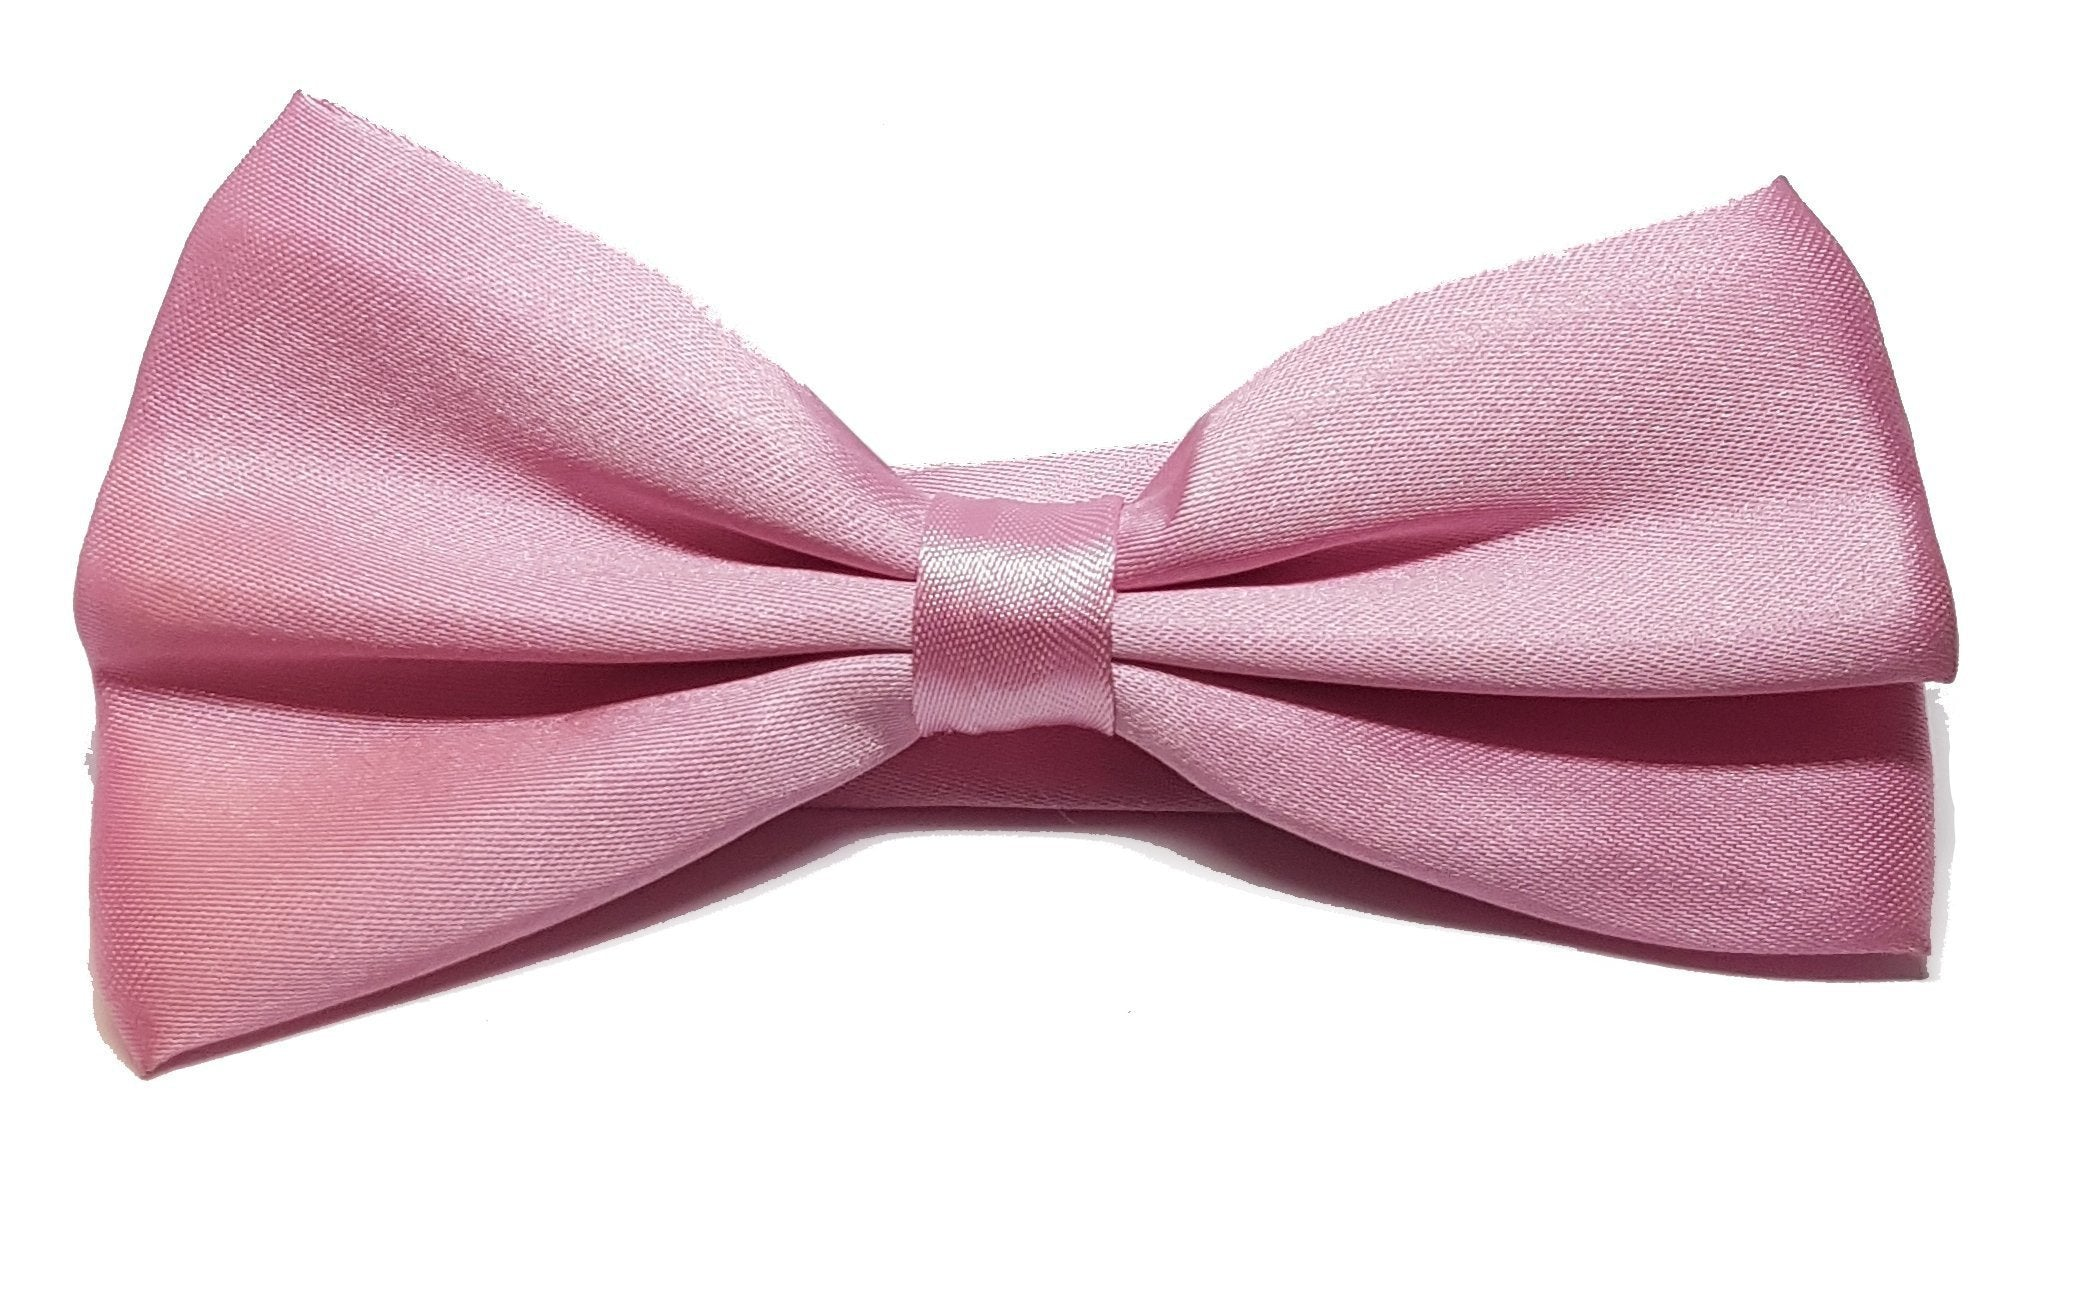 Light pink, shiny bow tie for gentlemen | The Perfect Gentleman